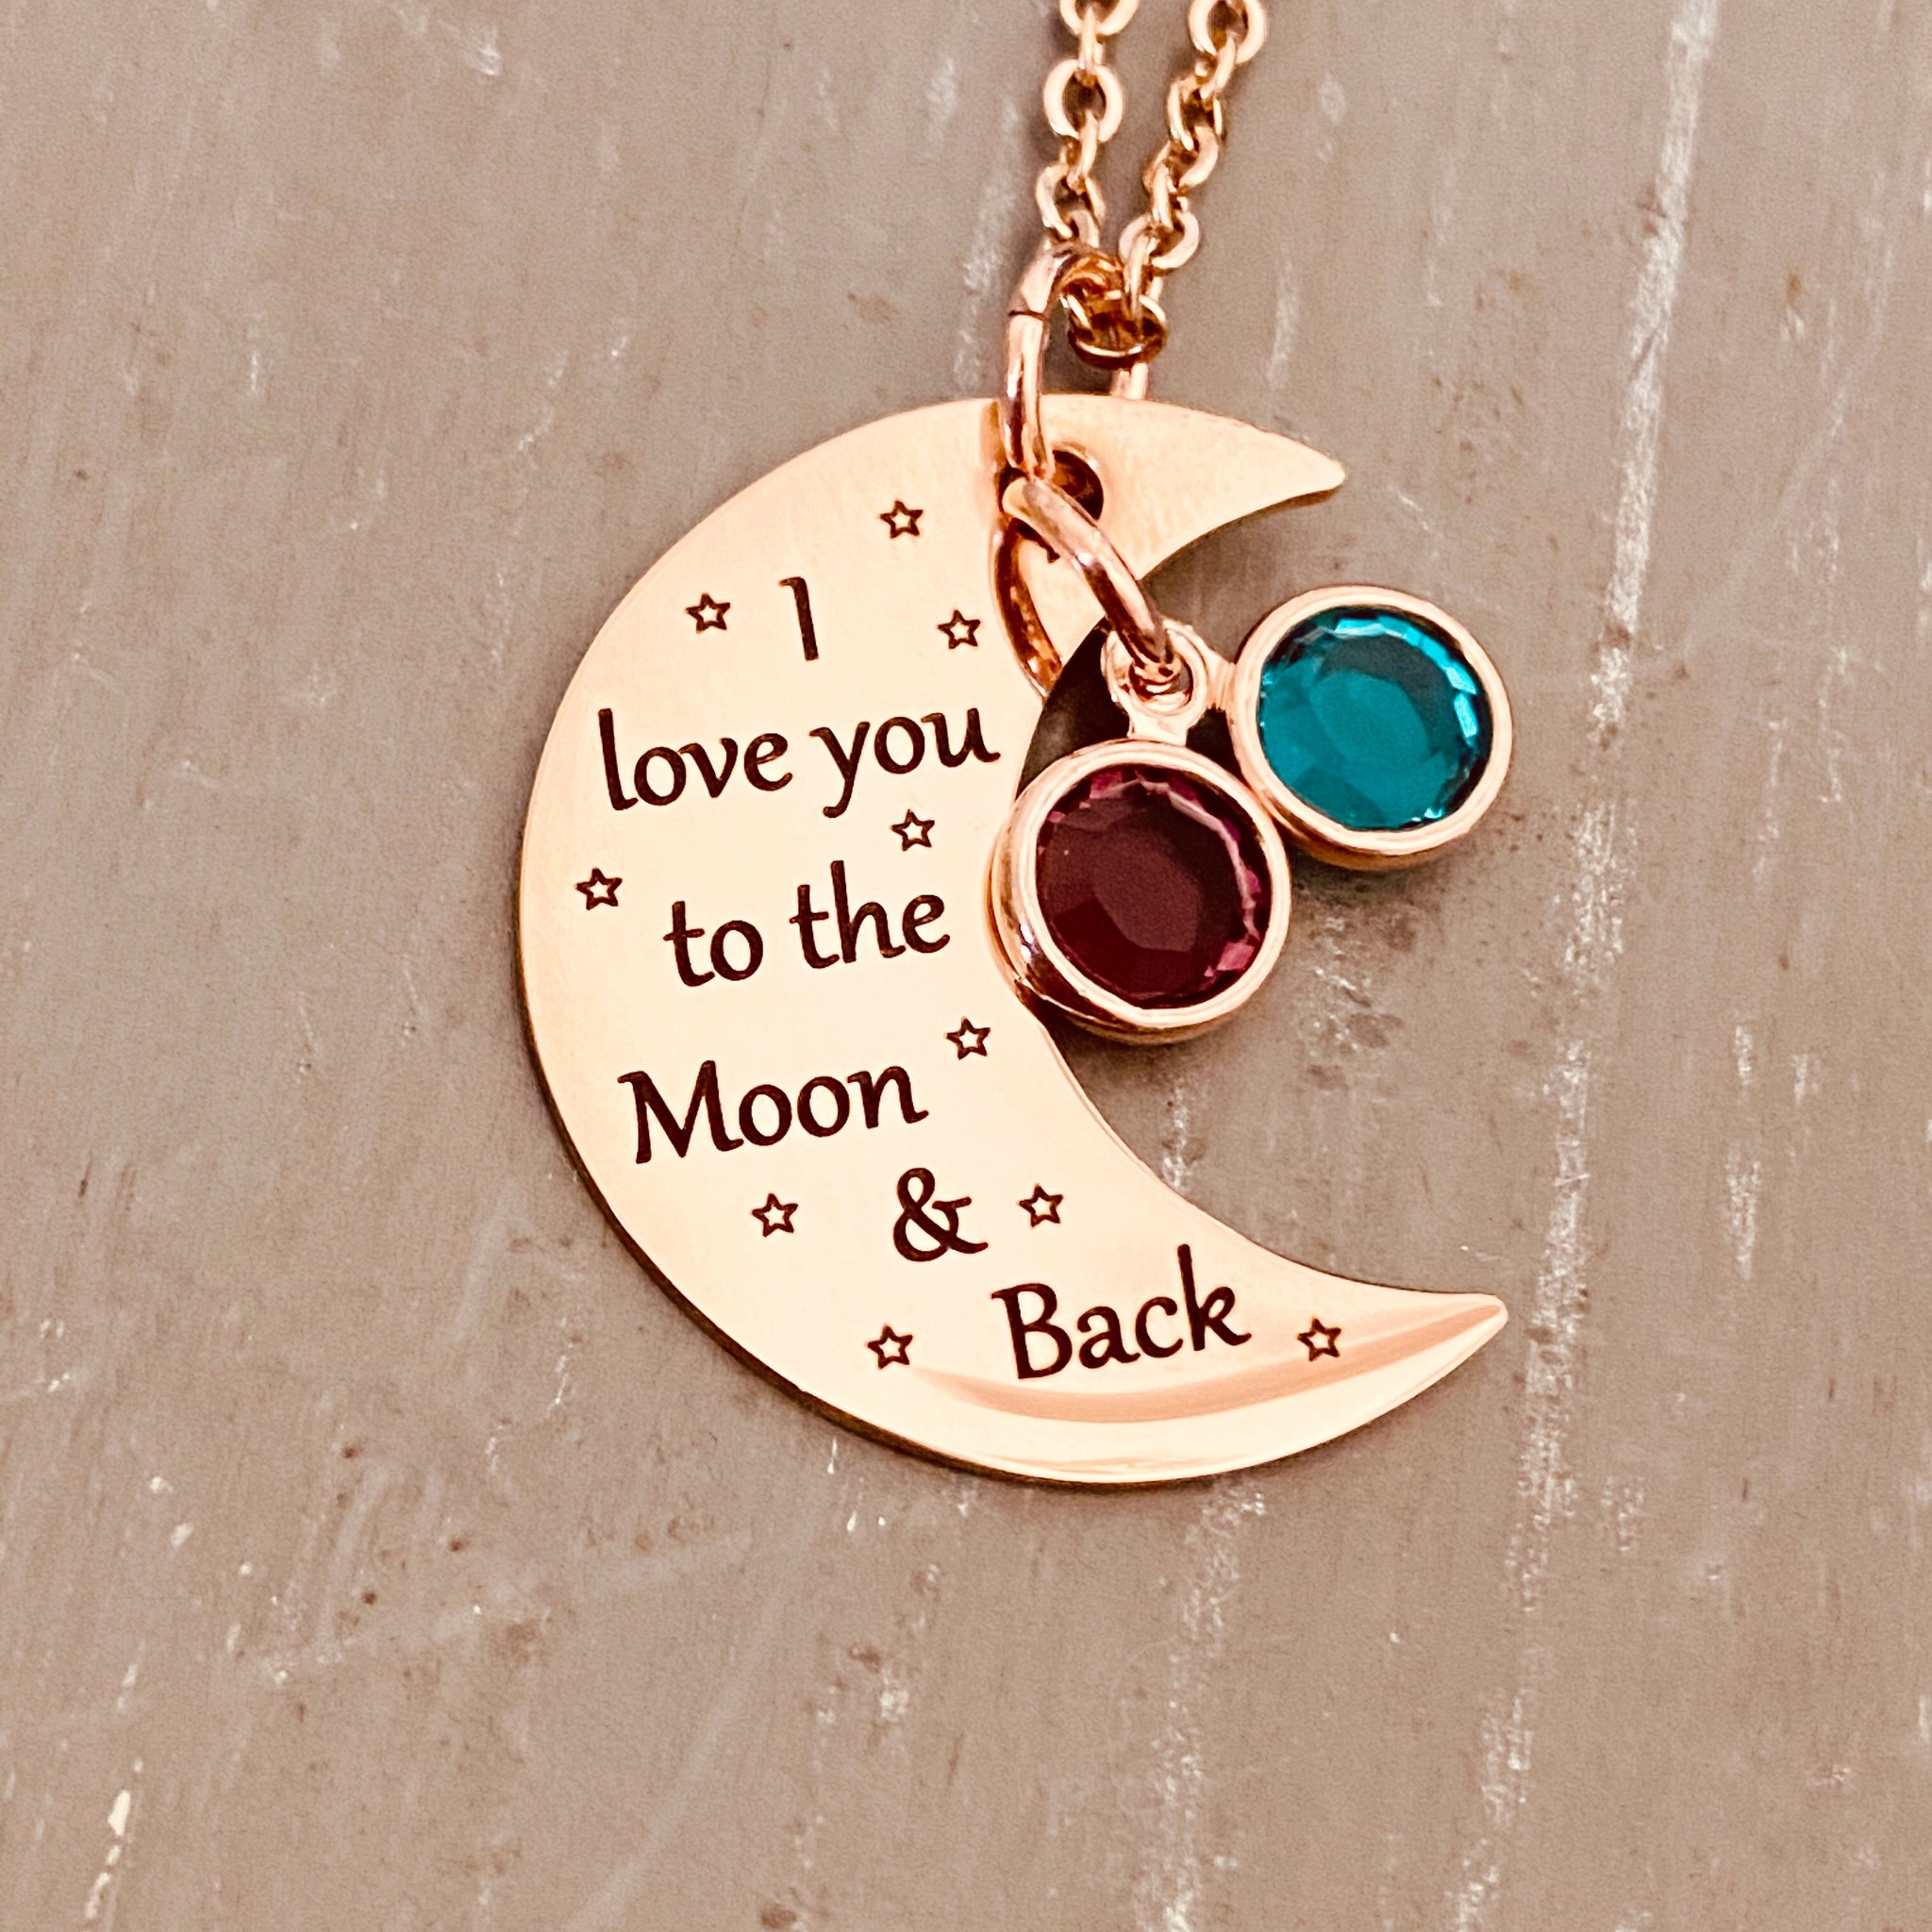 Thymeflower Custom Birthstone Necklace Personalized Engraved I Love You to The Moon and Back 925 Sterling Silver Pendant Heart Jewellery